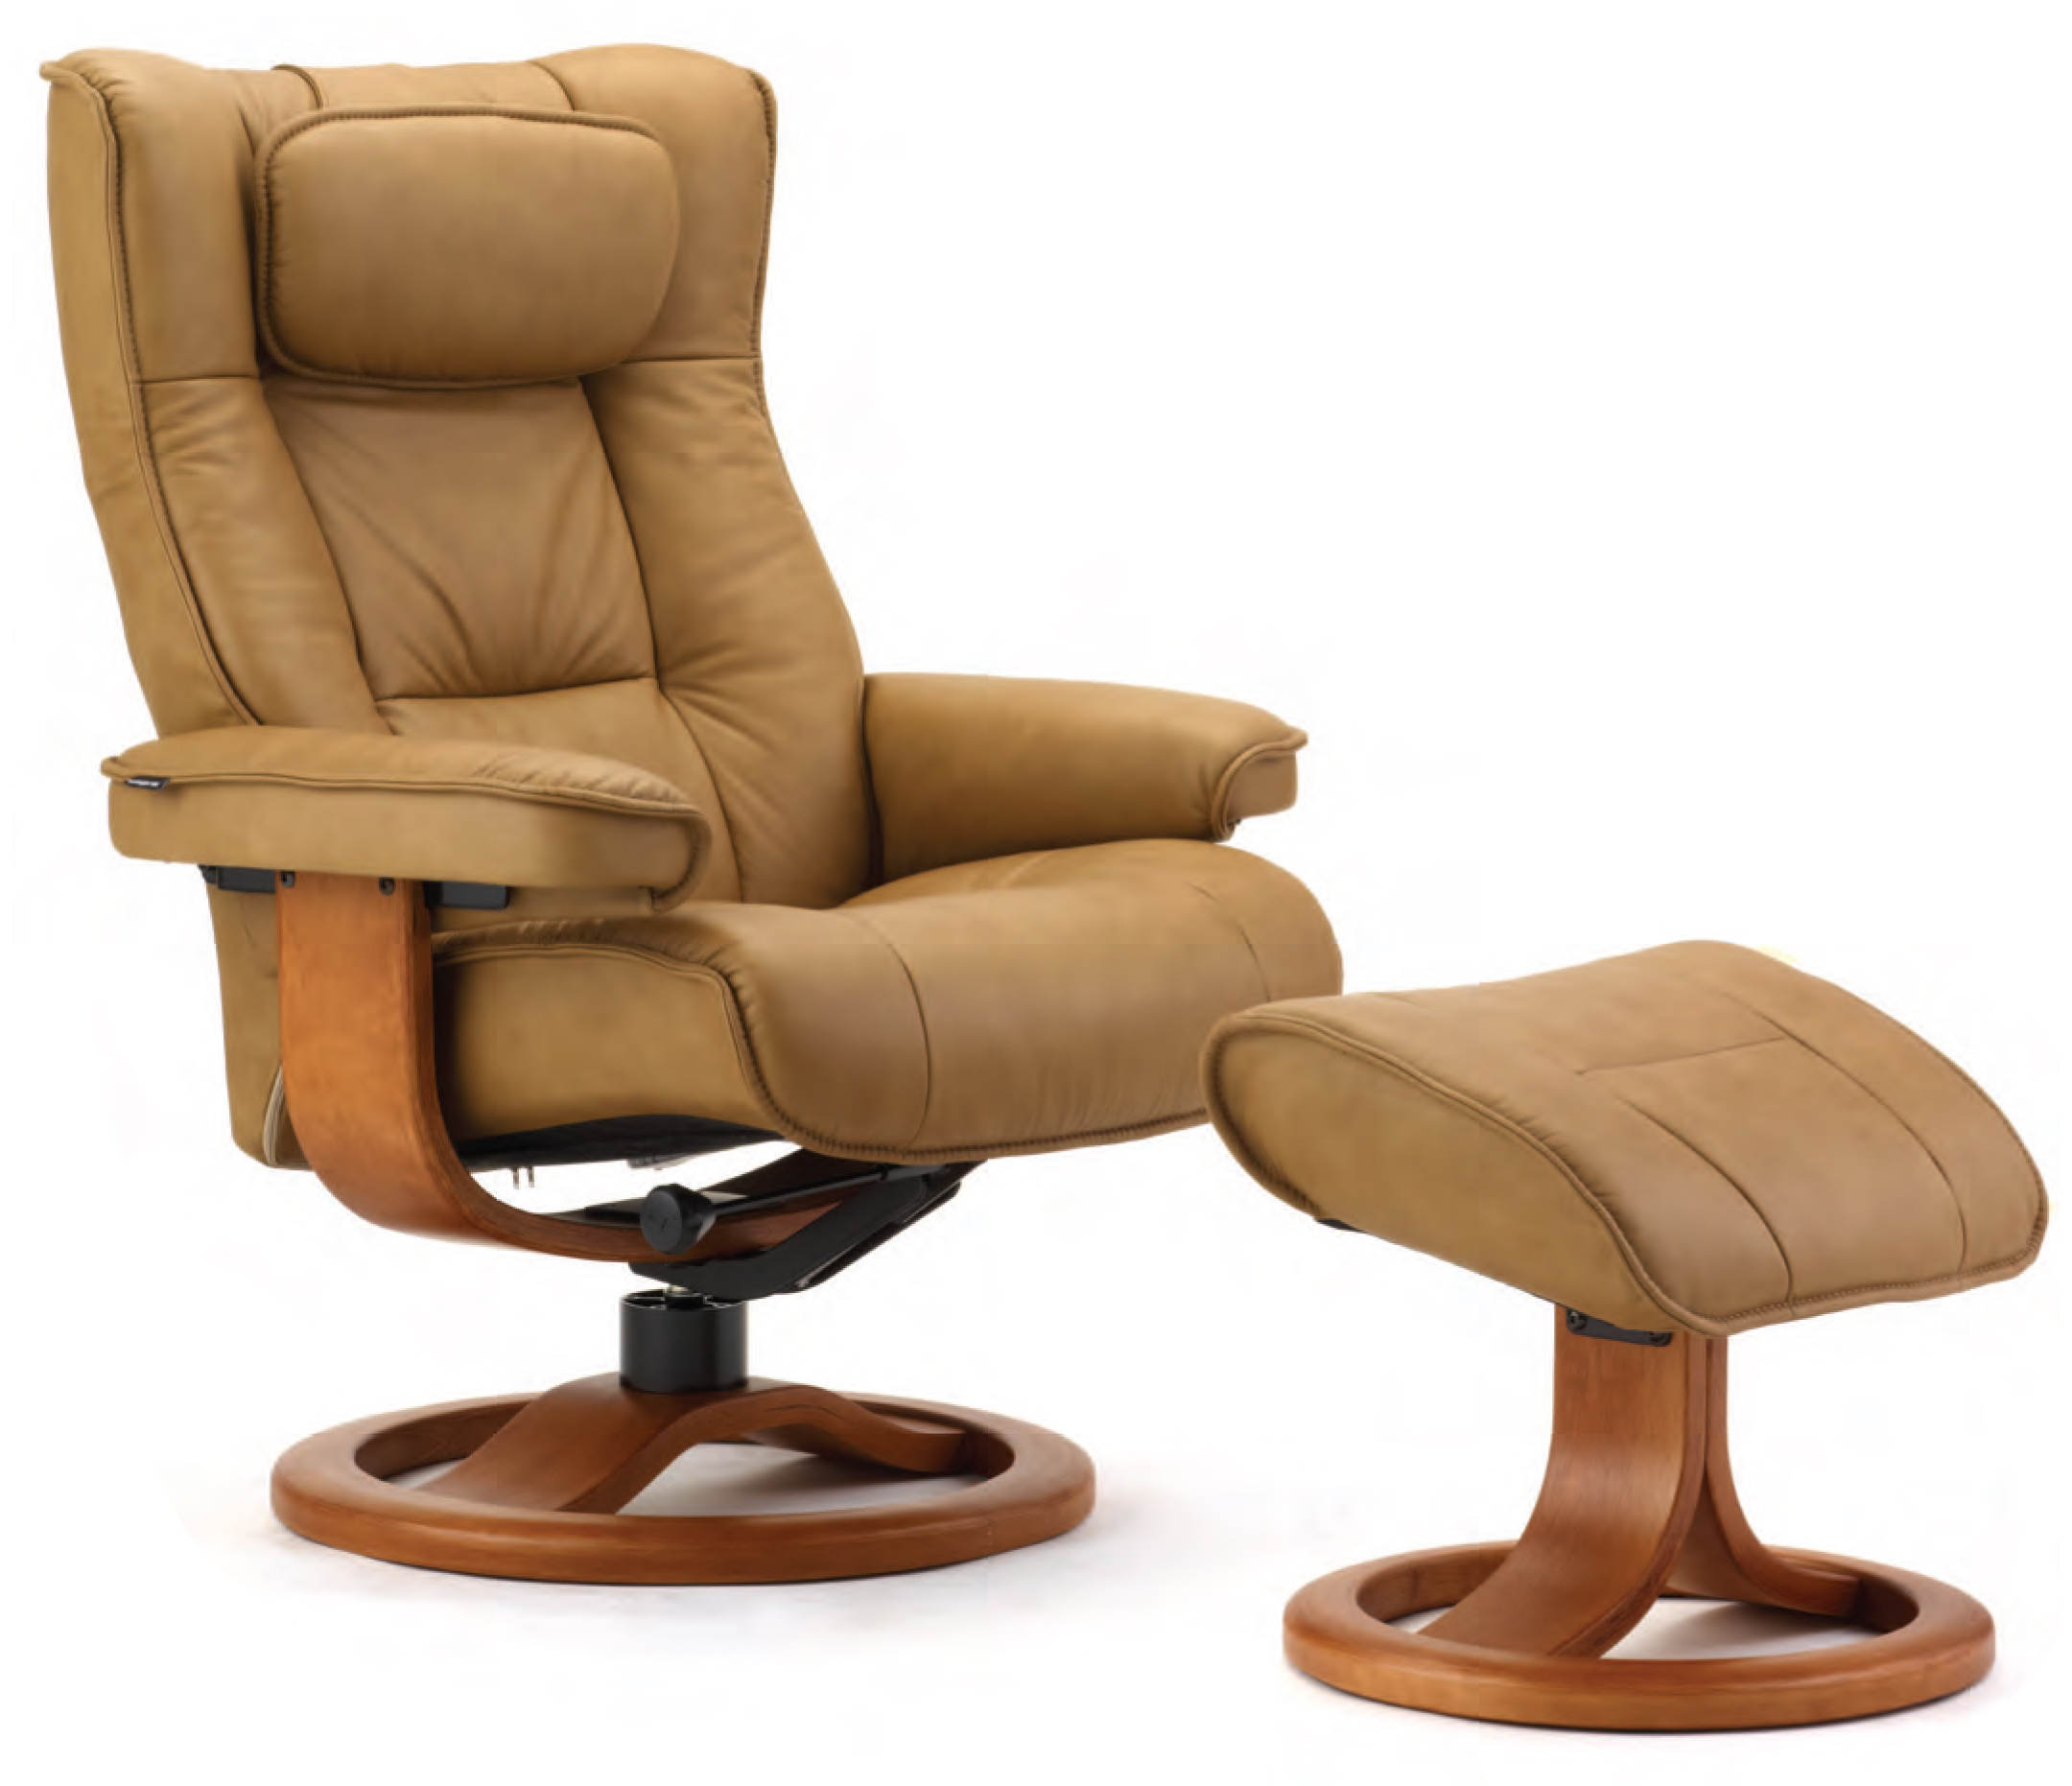 fjords regent ergonomic leather recliner chair  ottoman  - fjords regent hassel leather recliner chair and ottoman